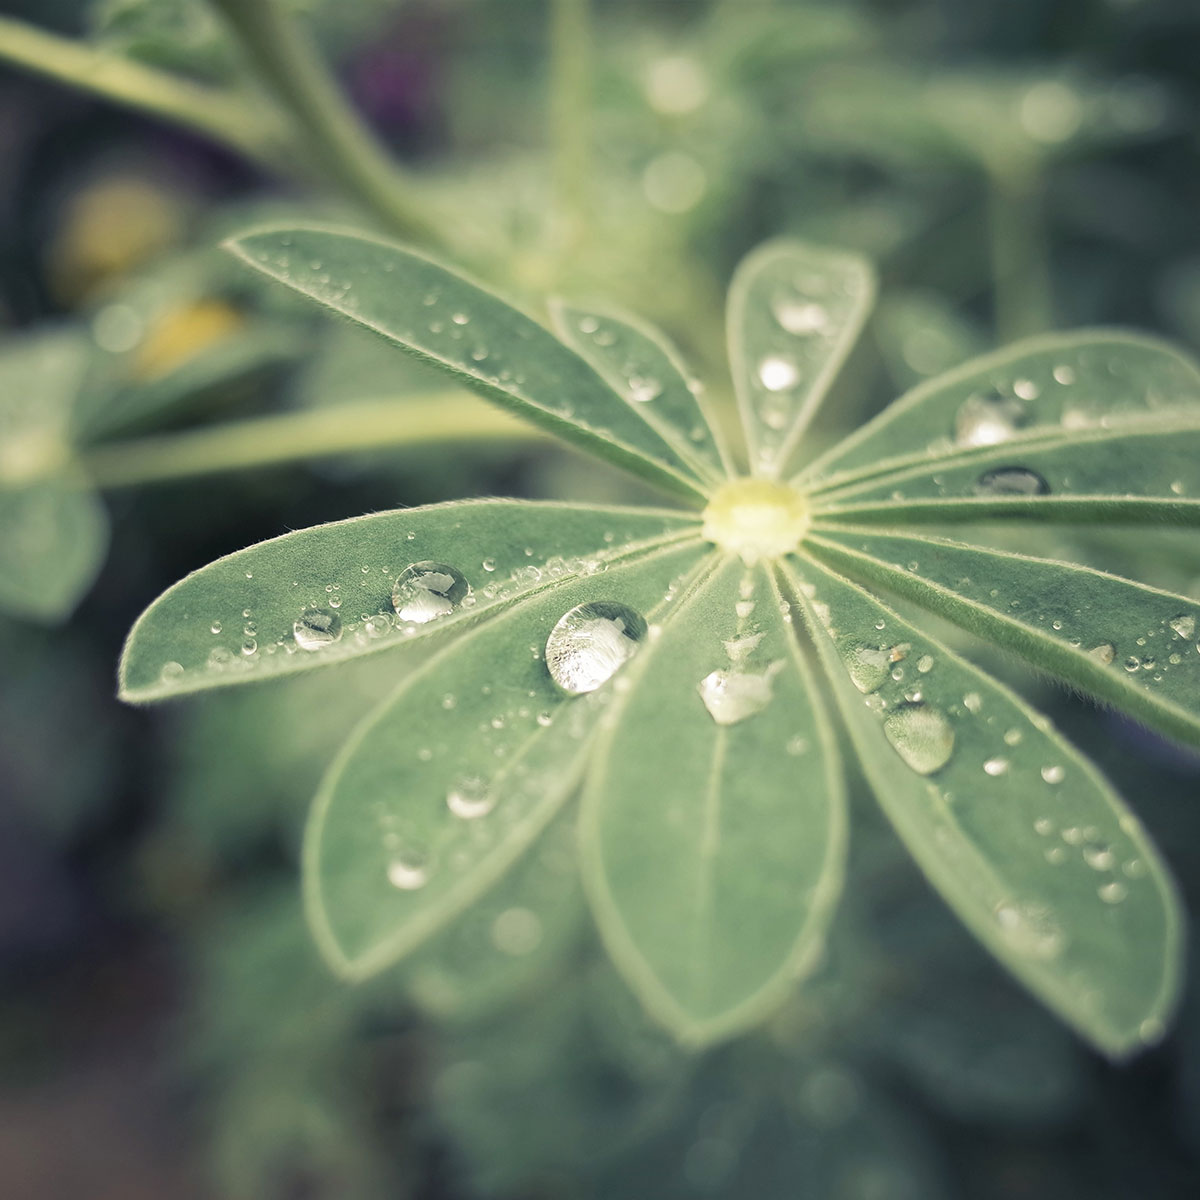 water droplets on plant